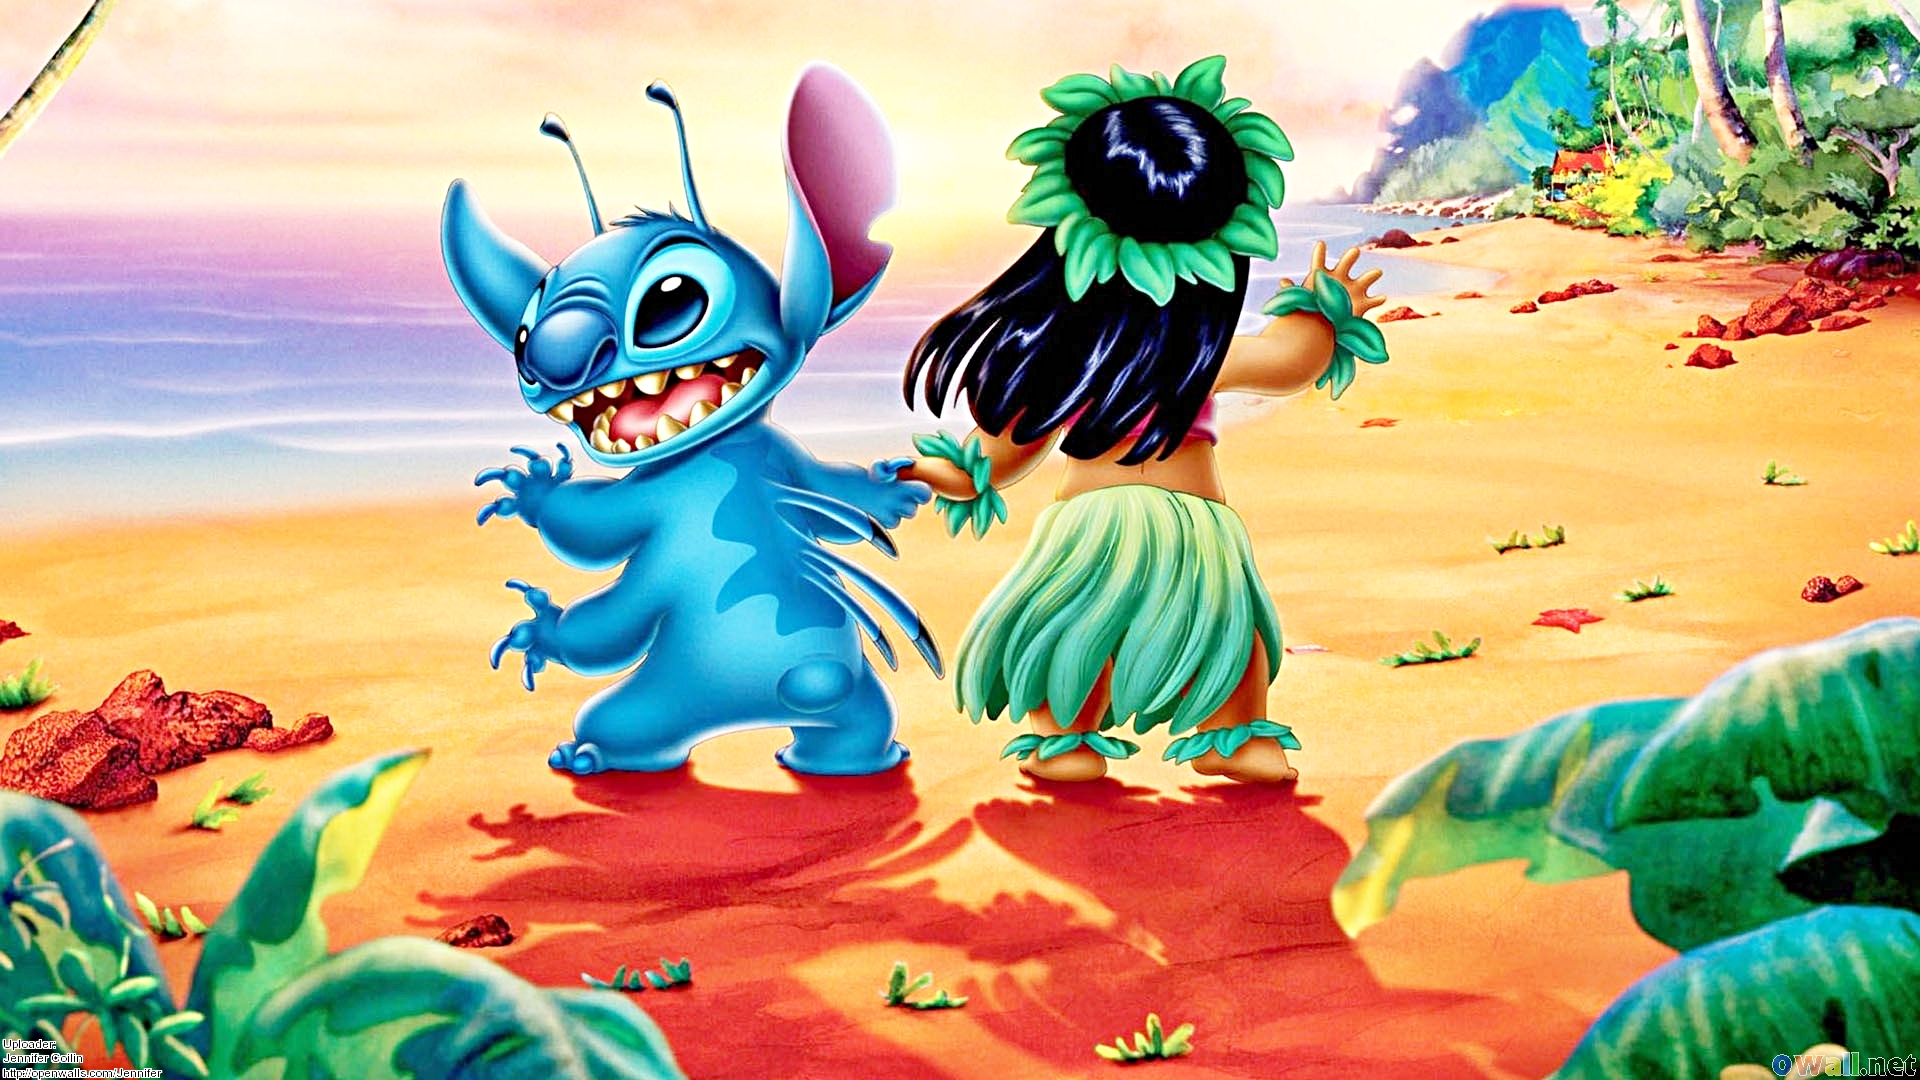 Walt Disney Wallpapers Stitch Lilo Pelekai walt disney characters 1920x1080